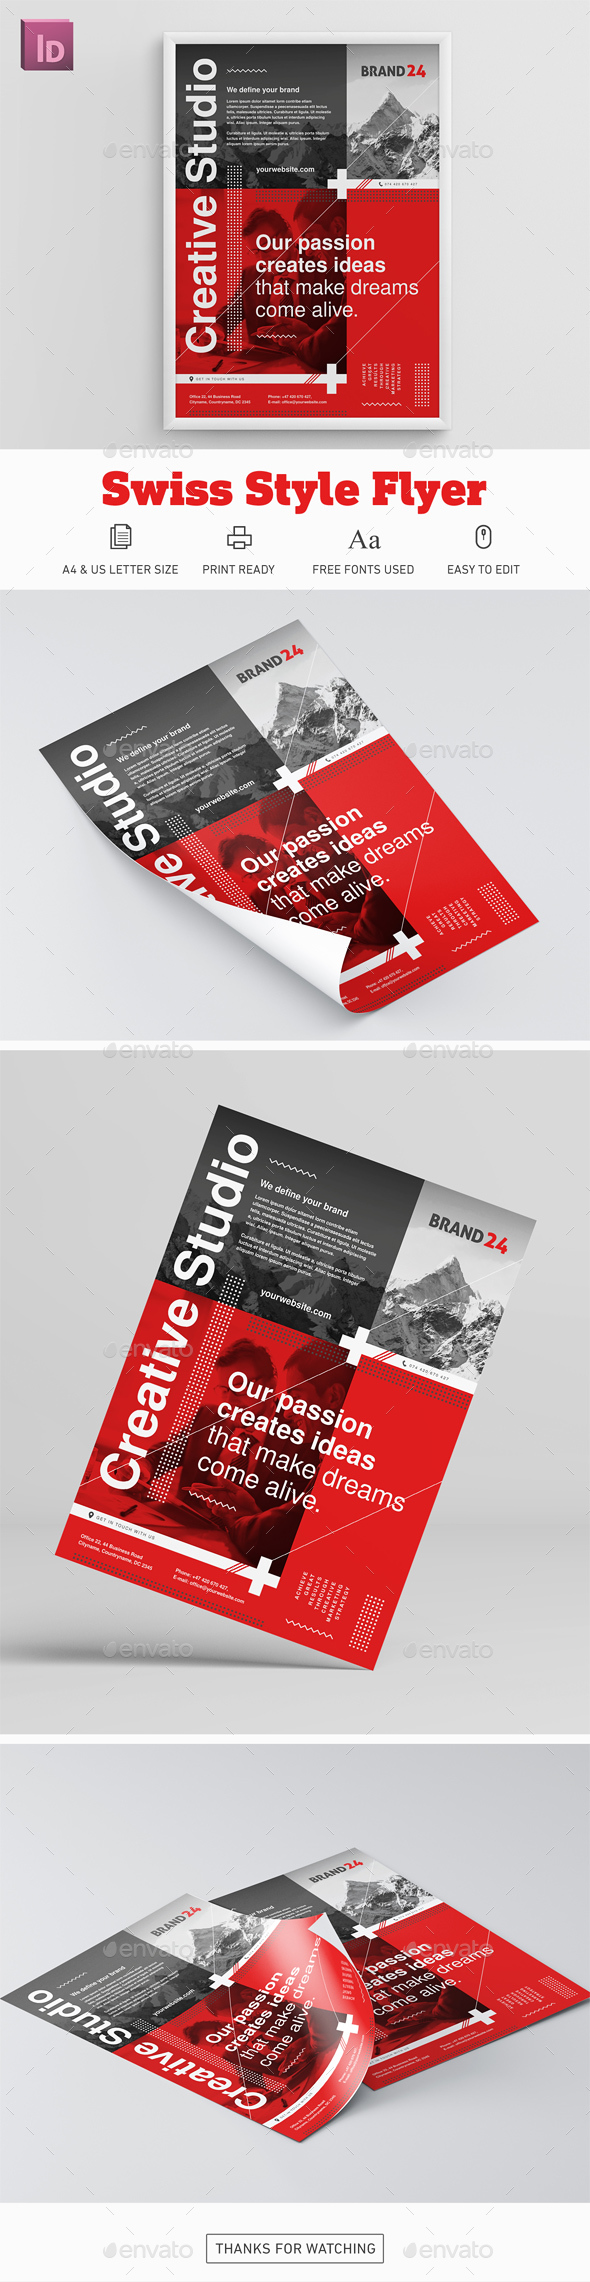 Swiss Style Flyer - Corporate Flyers